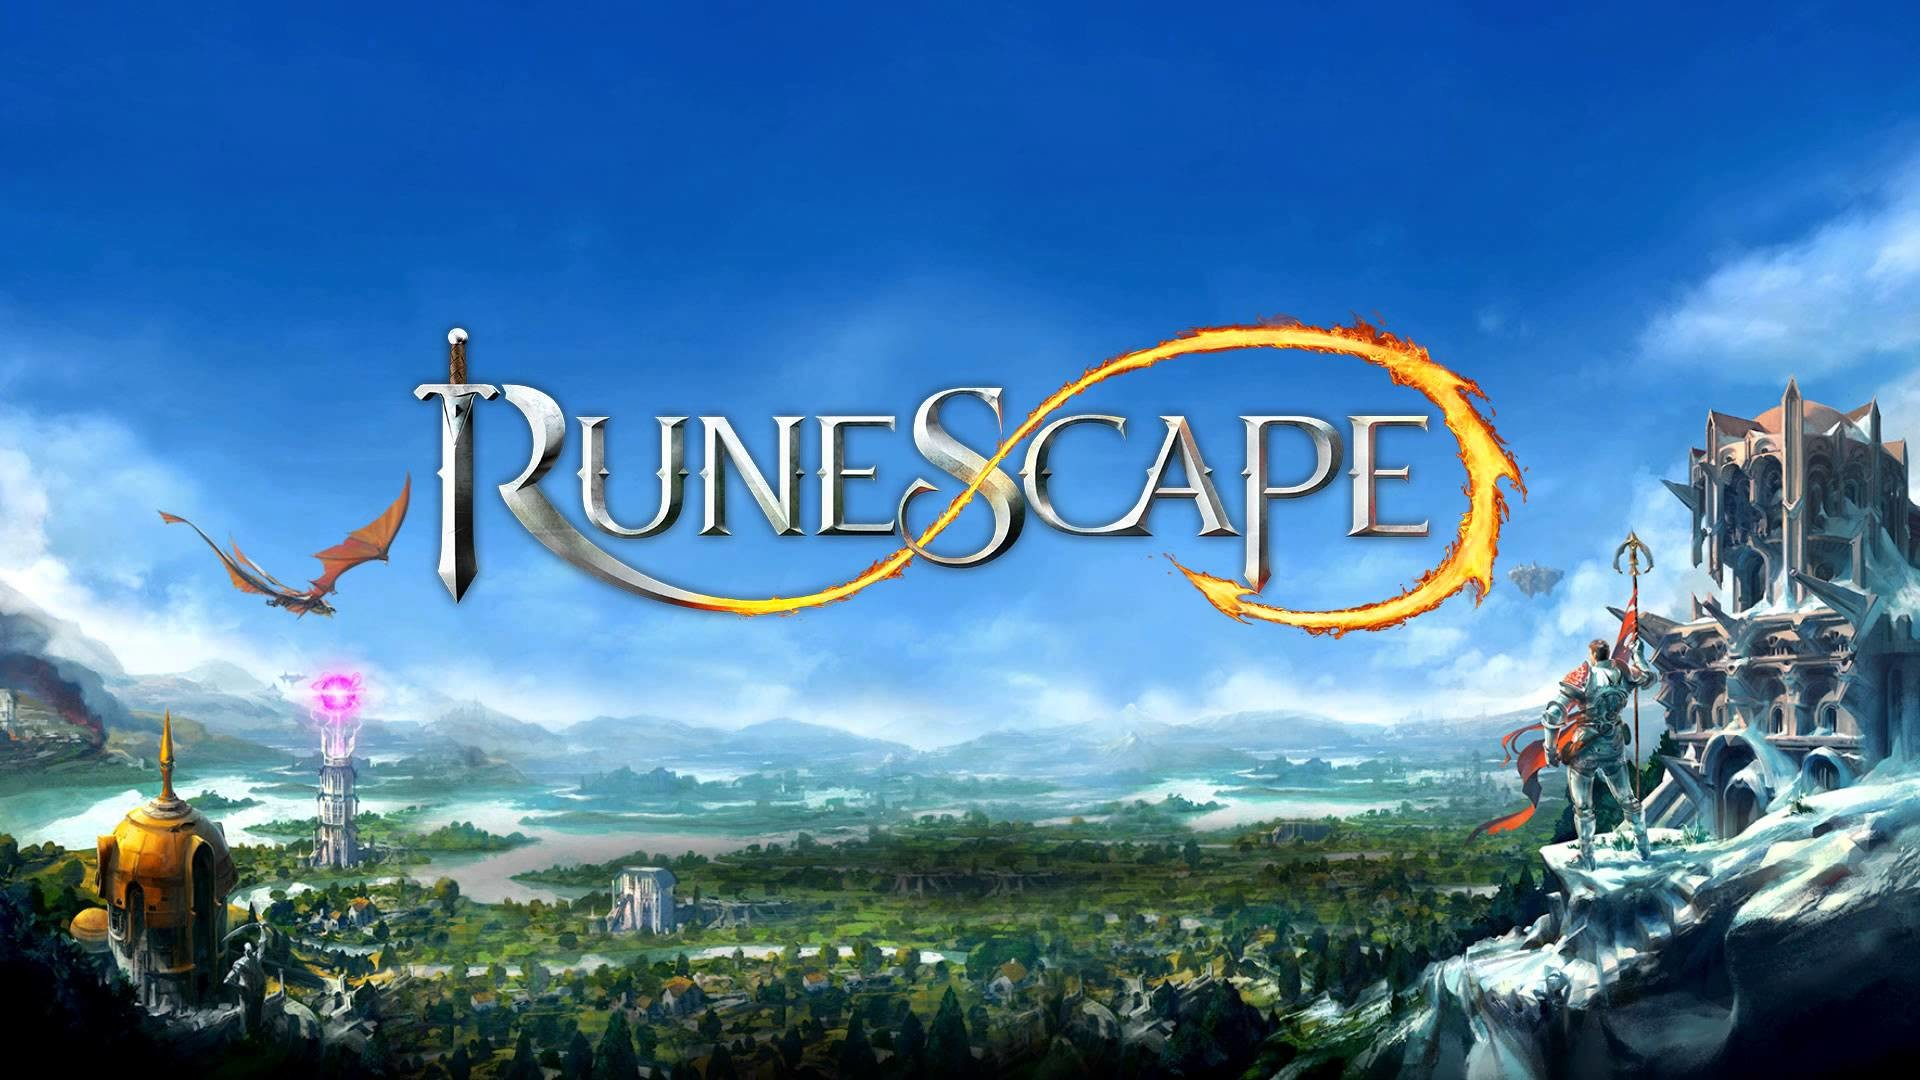 Occult Wallpapers Hd Runescape Wallpaper 85 Images